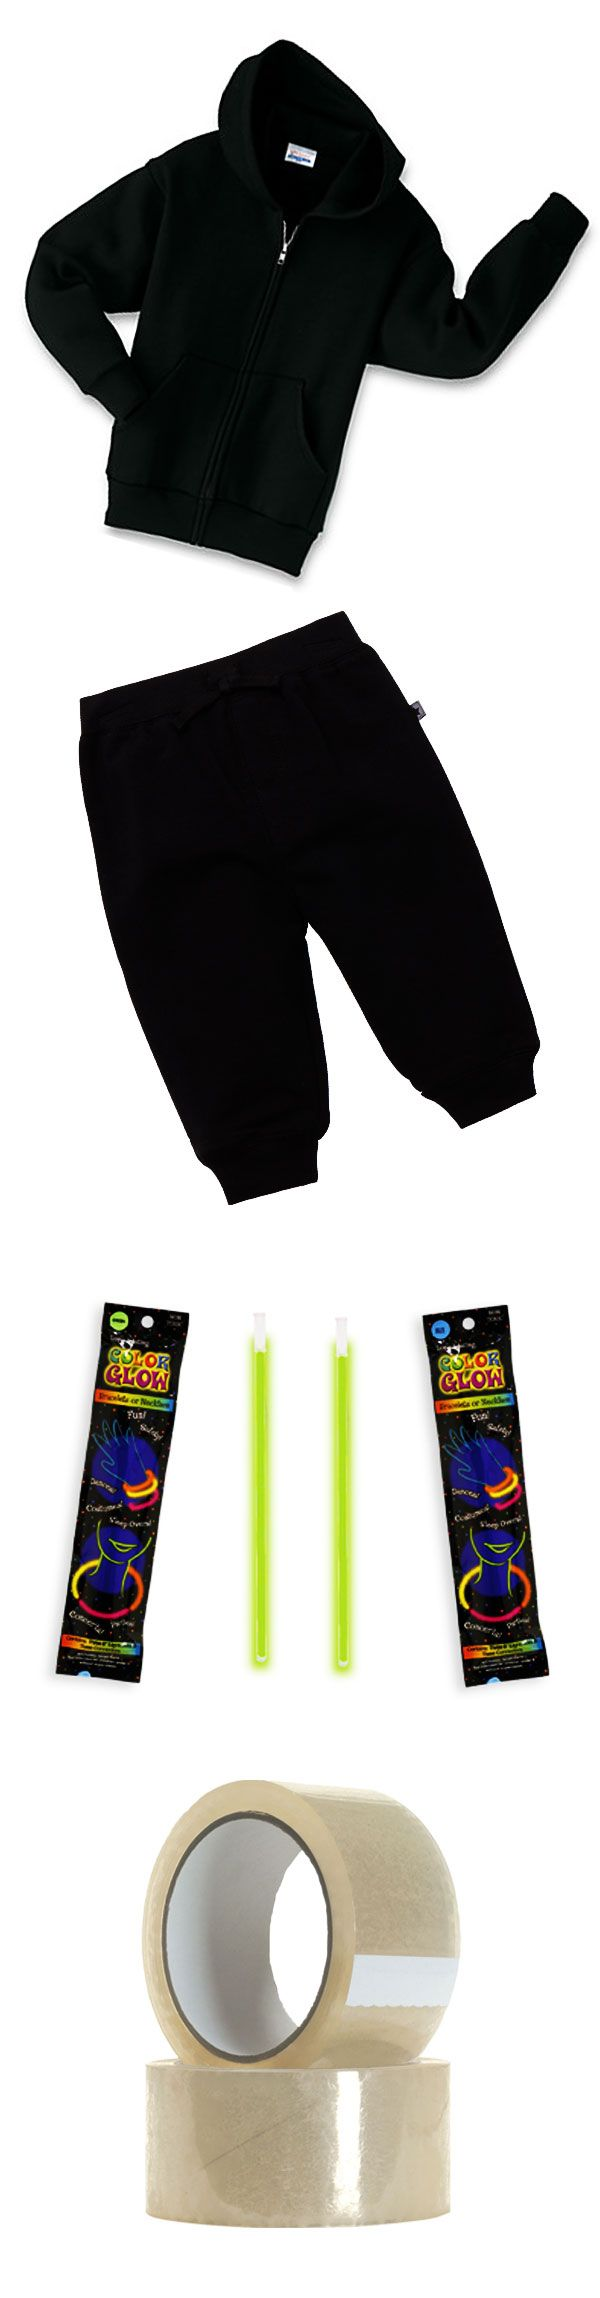 How to Make Your Own Cheap, Easy Glow-in-the-Dark Stick Figure Costume